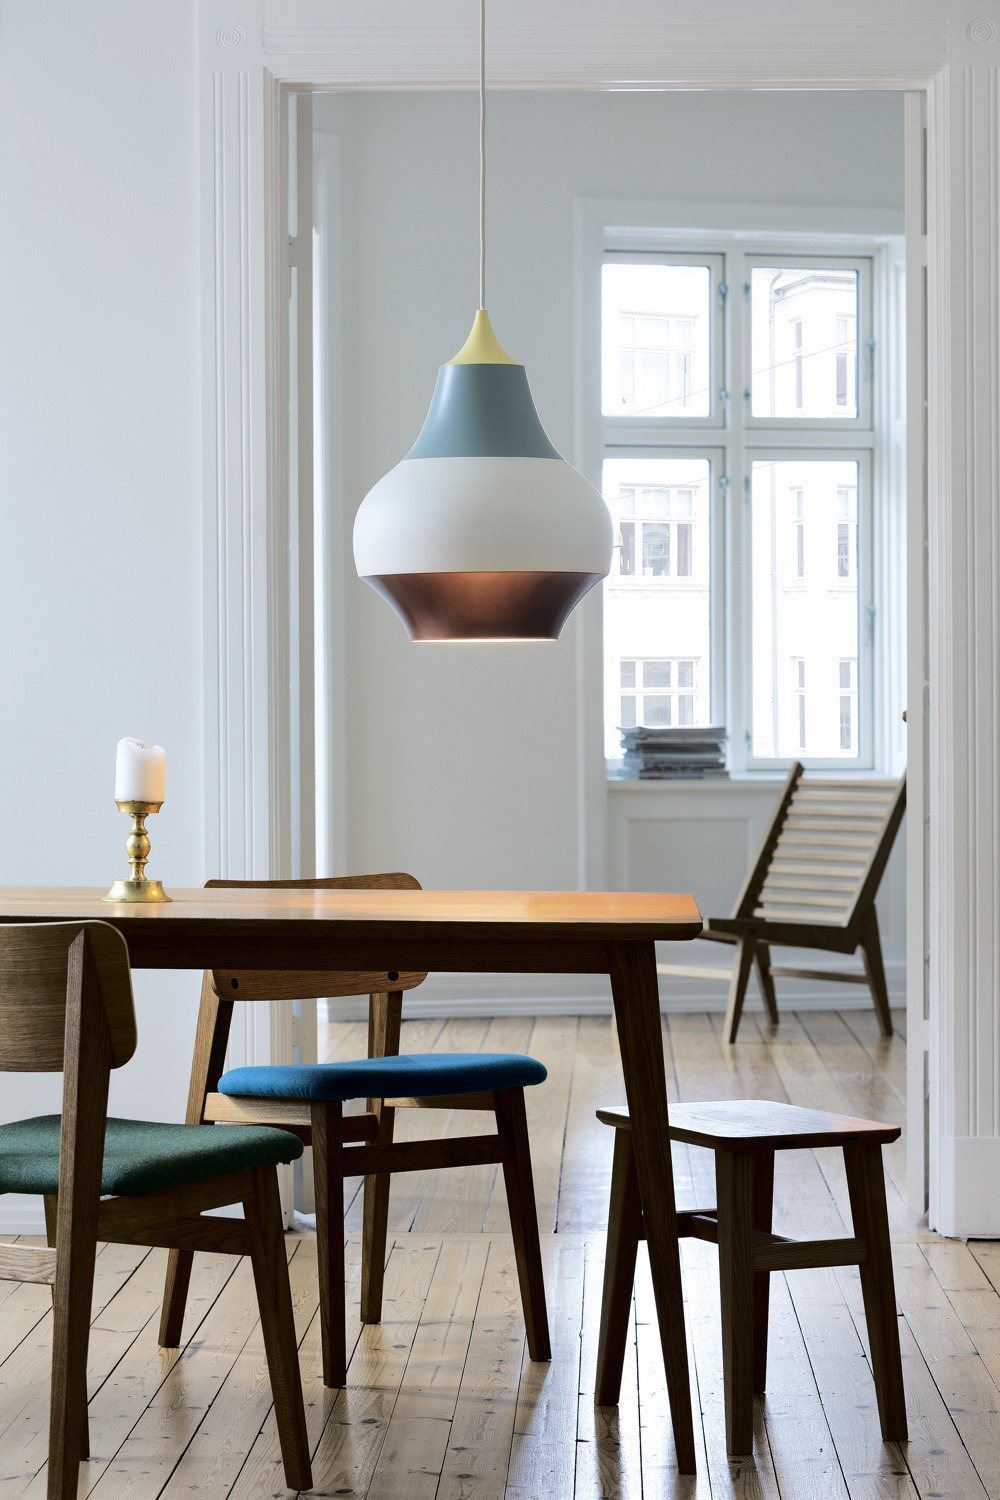 Cirque large-size pendant by Louis Poulsen.